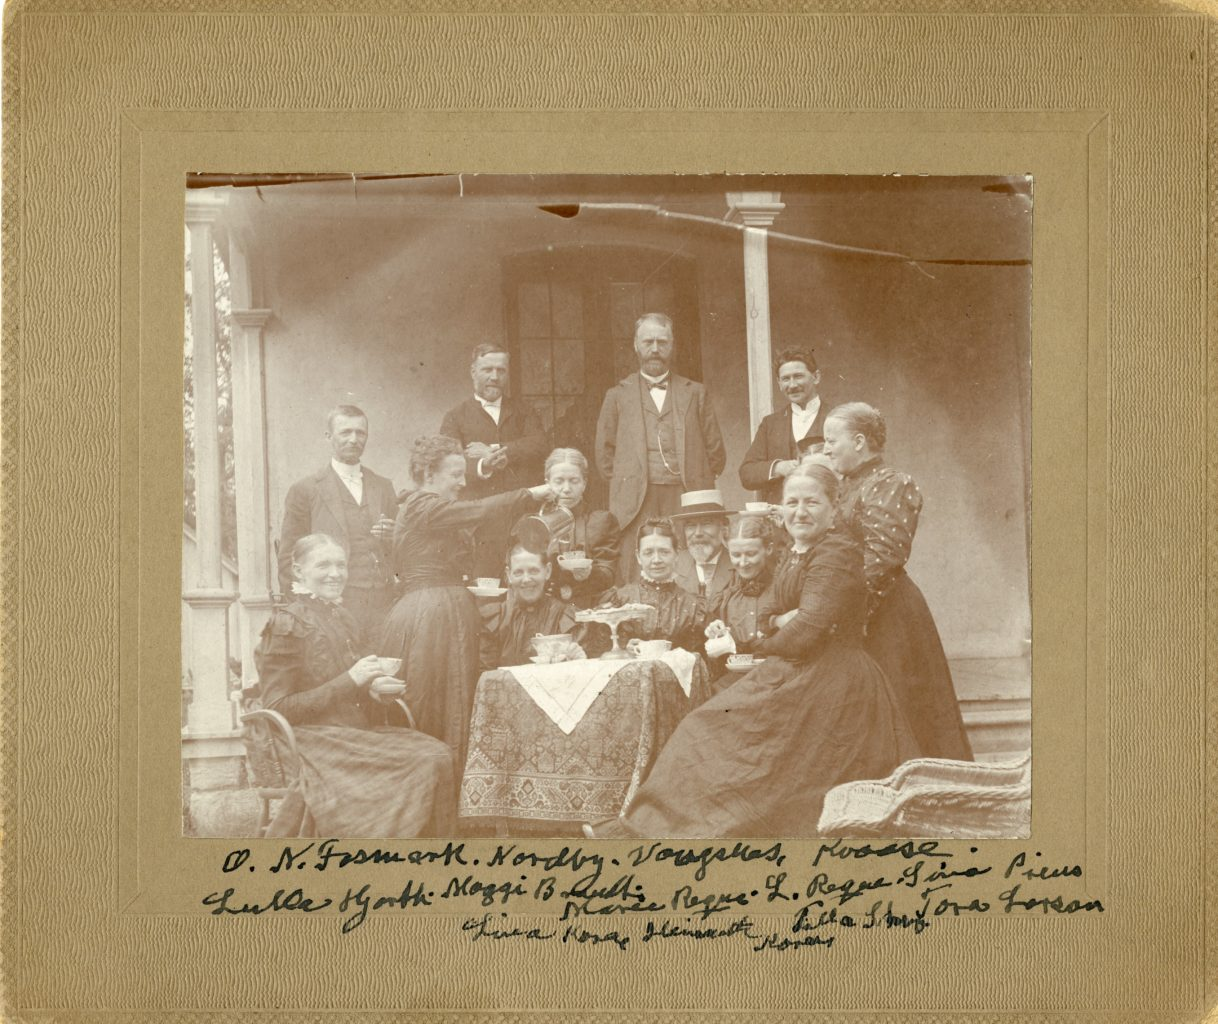 Approximately thirteen adults sit outside around a table drinking coffee.